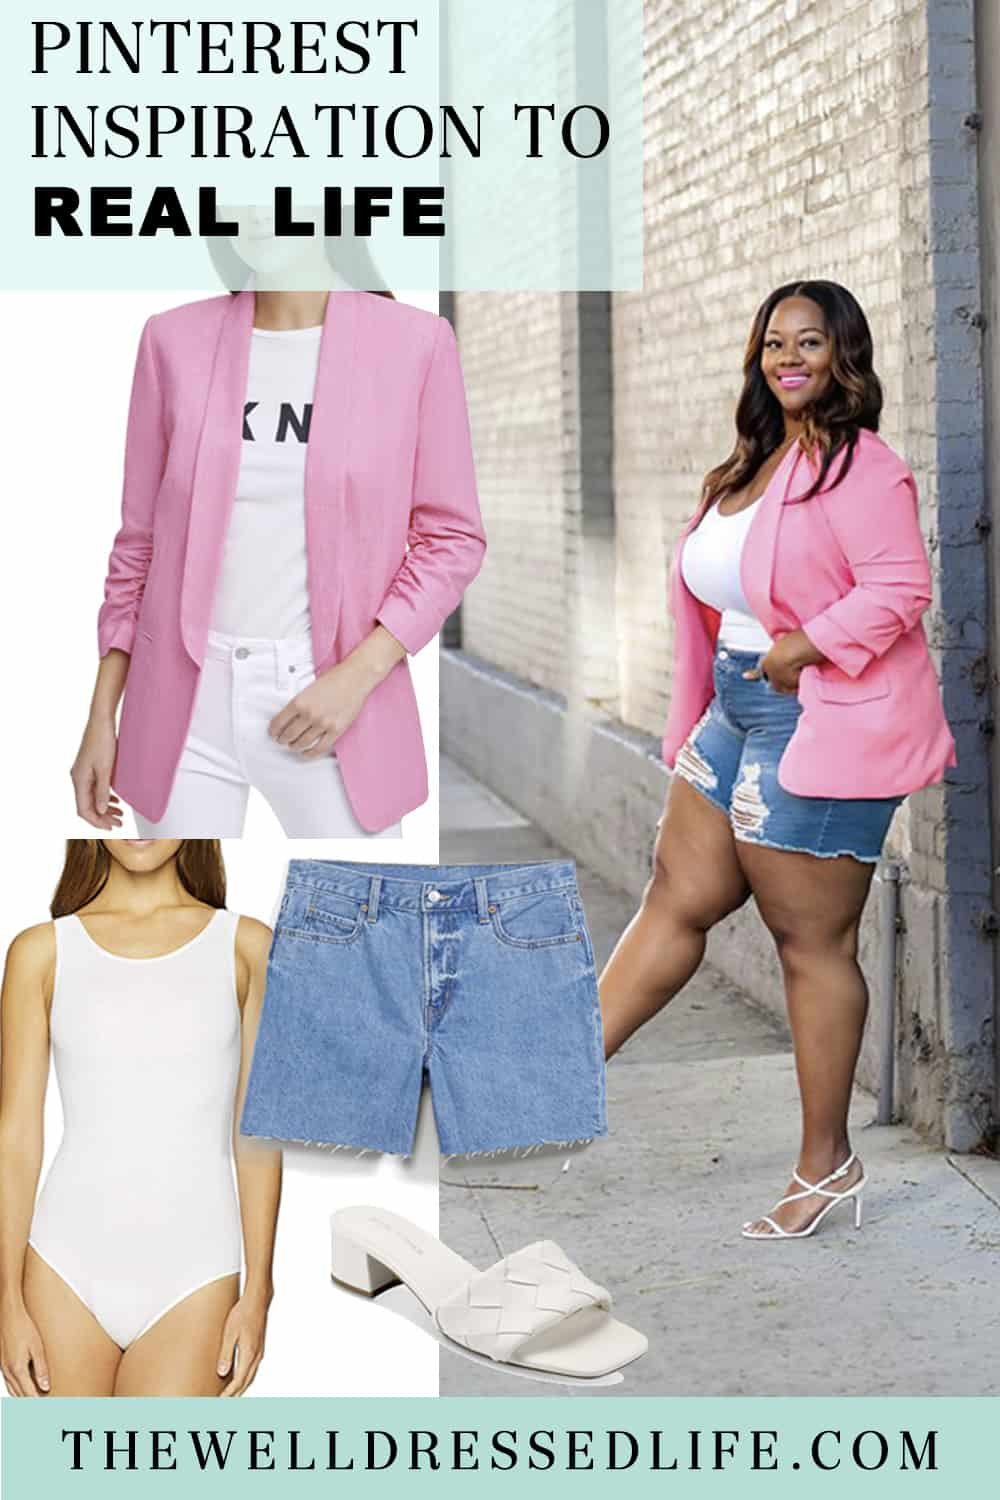 Pinterest in Real Life: Shorts and a Blazer